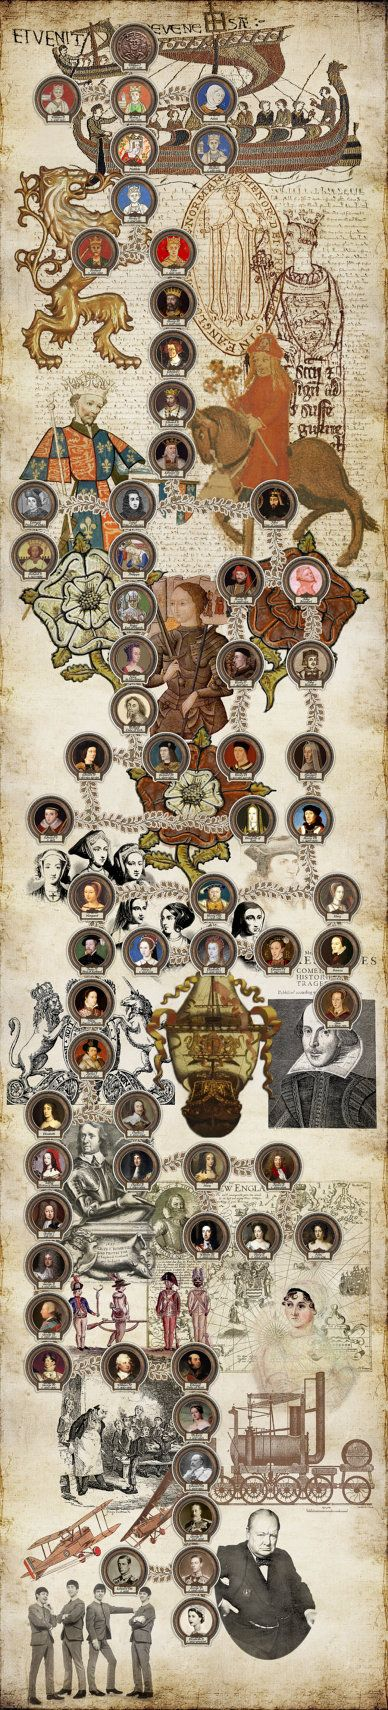 Monarchs of Great Britain from William to Elizabeth II